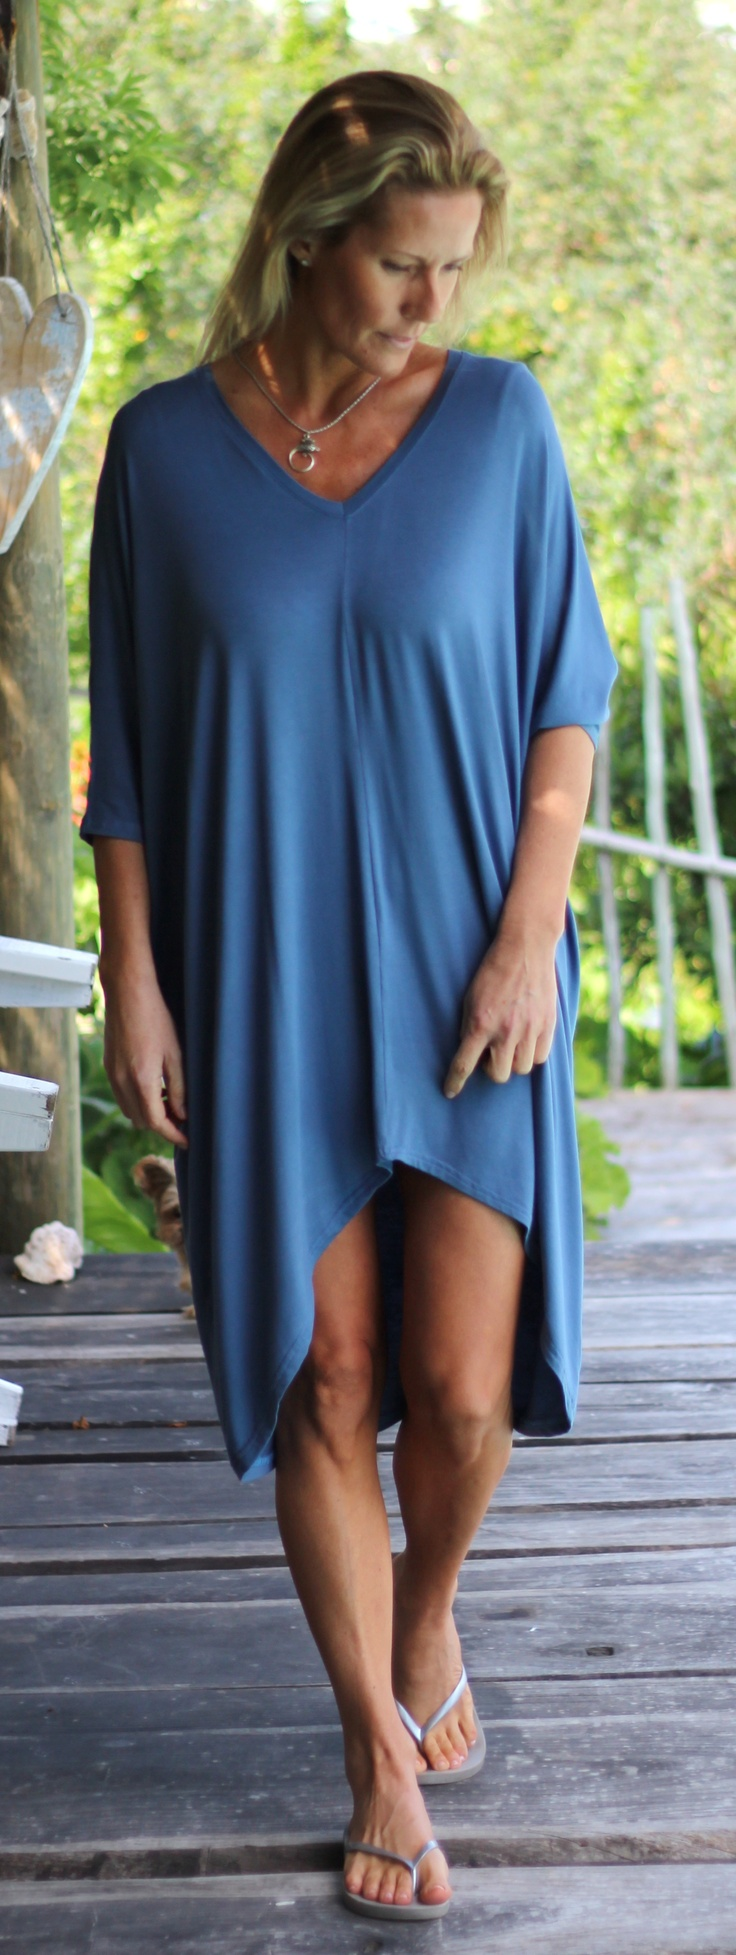 another kick back and relax dress ... the 'v-long', it's the kaftan mood but not quite a kaftan. It's the laid backslip on and is lovely over a pair of capri's or just as is ... it's loose, comfy, breezy and feels as light as a feather ... x x x